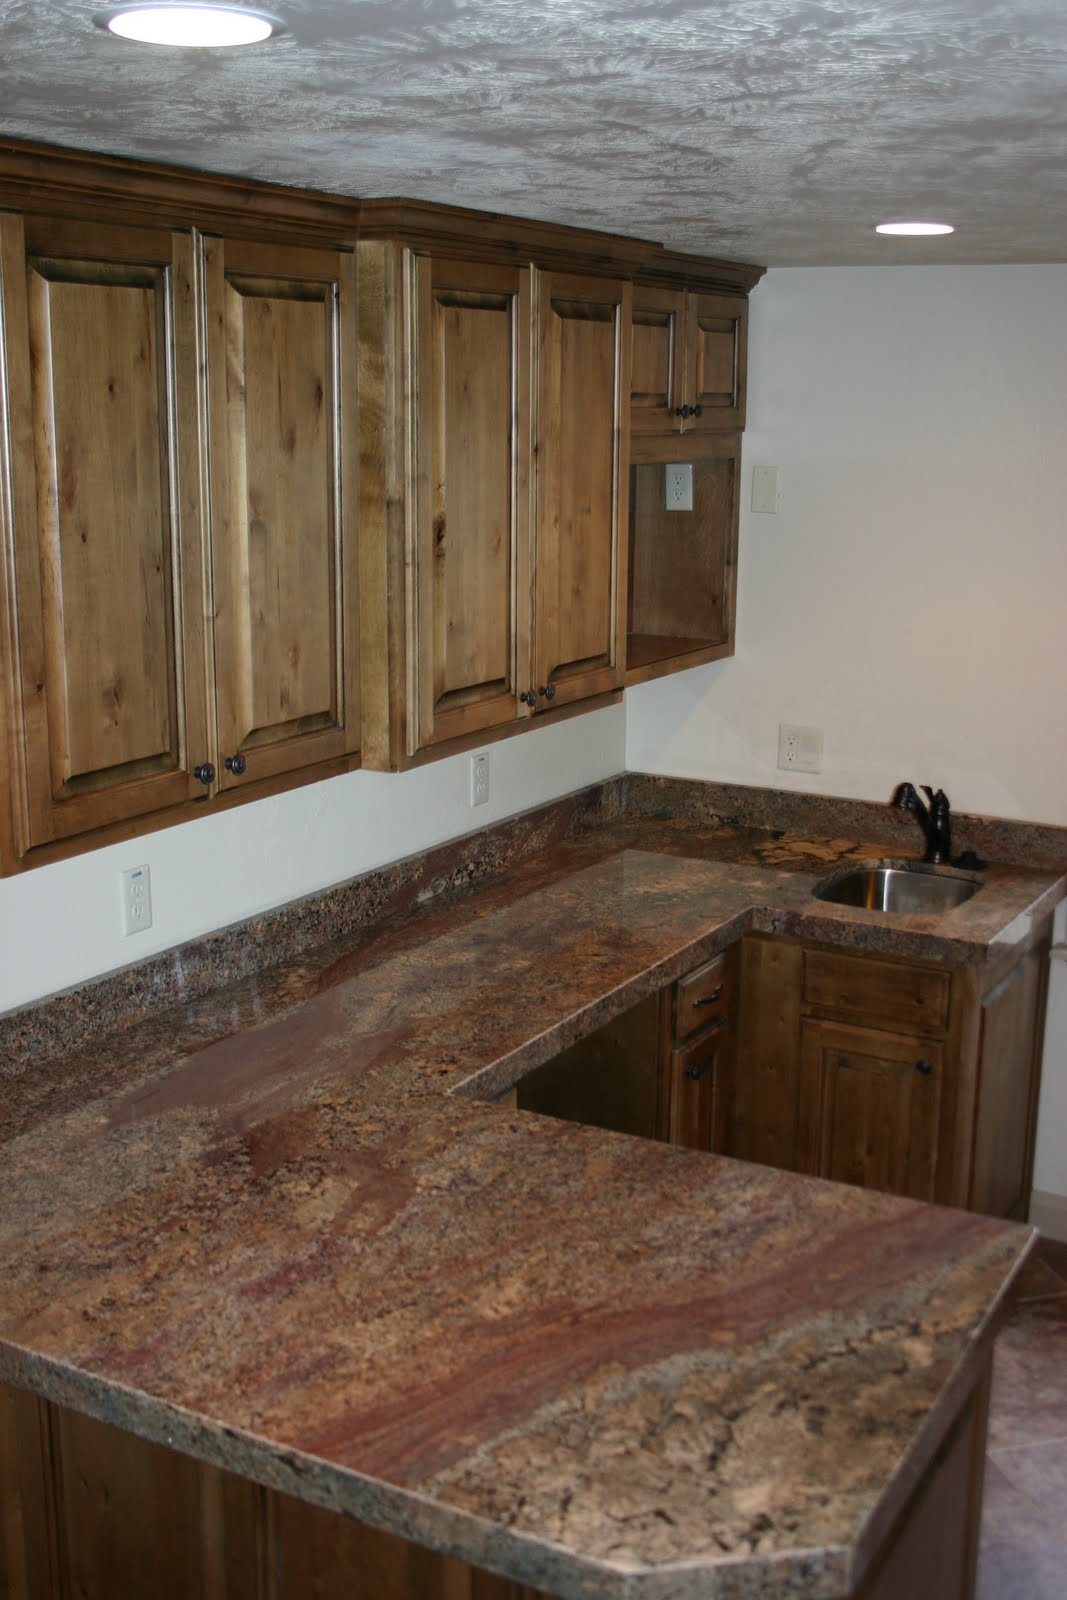 Crema Bordeaux Granite Kitchen The Granite Gurus Crema Bordeaux Second Kitchen